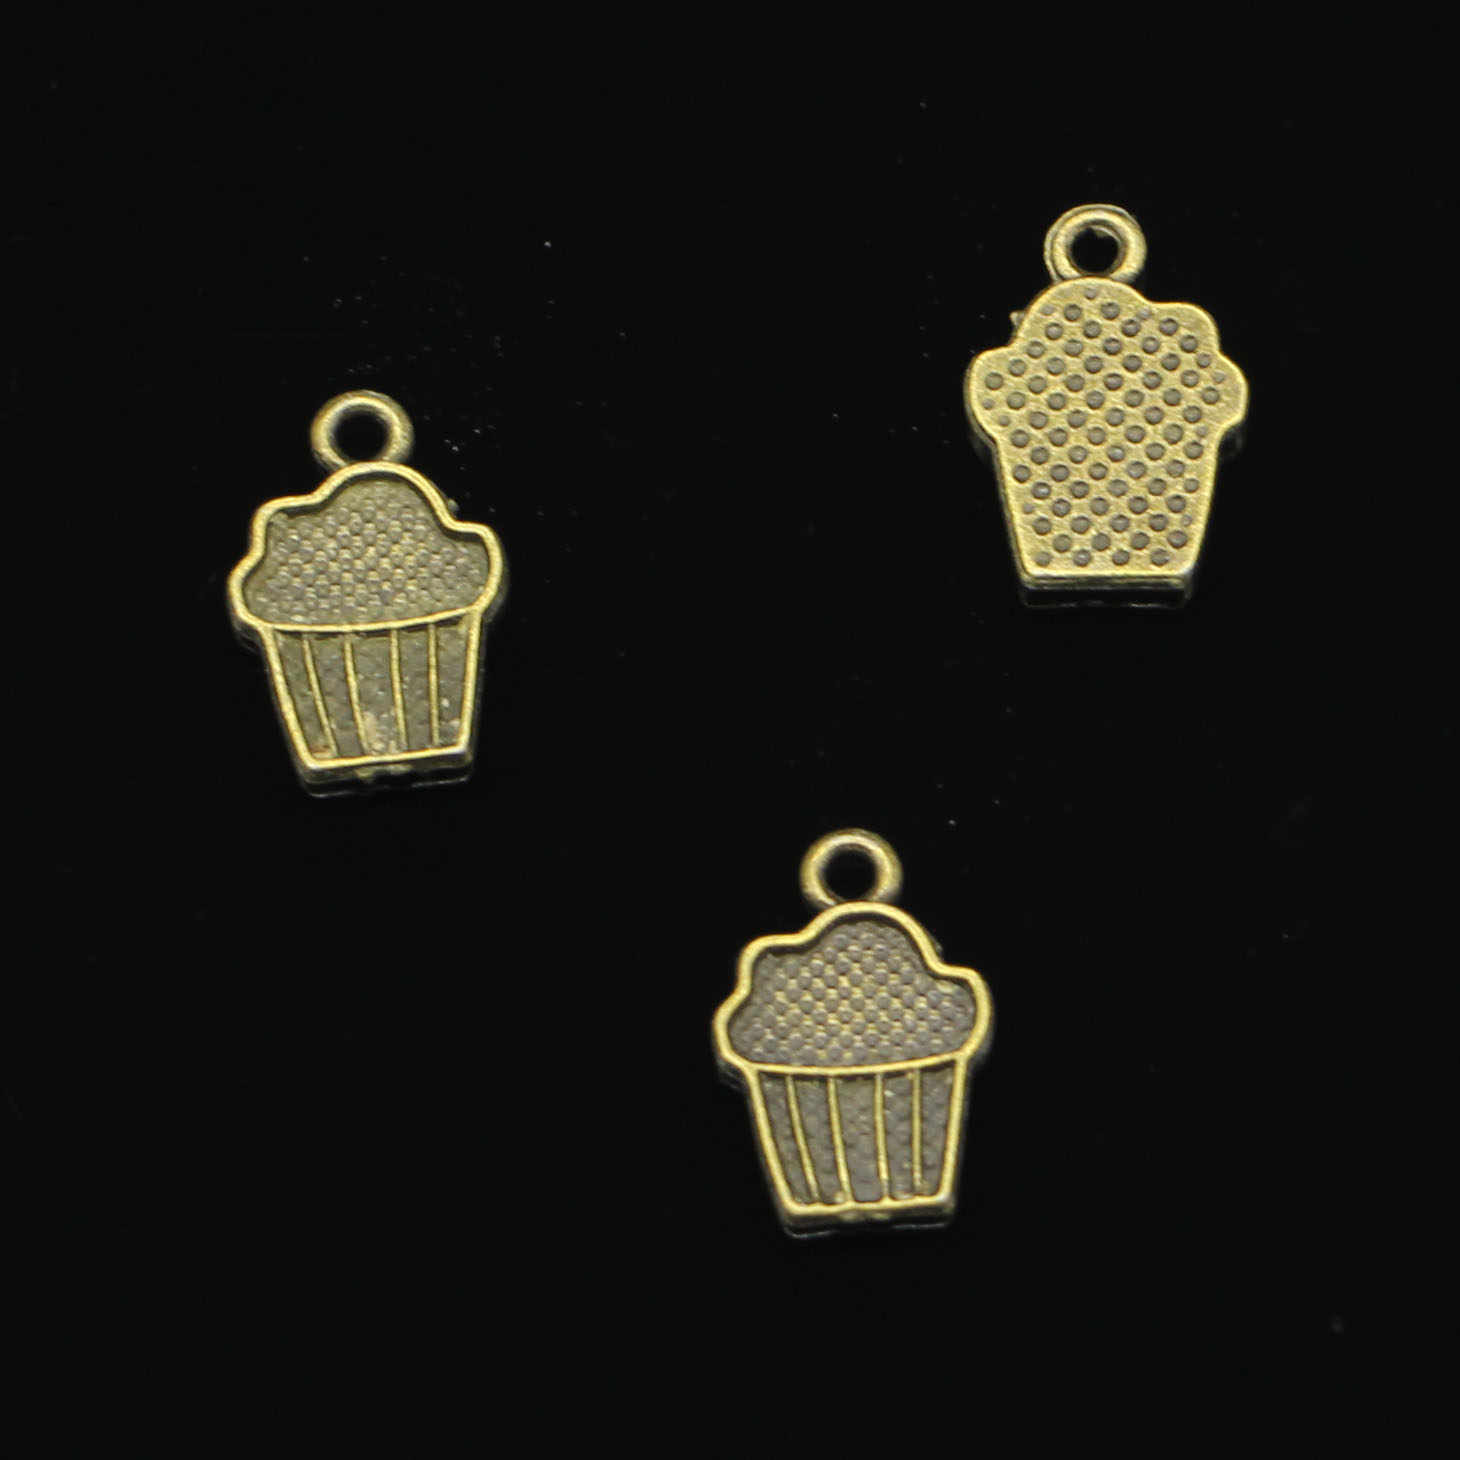 120 pcs Antique Bronze Plated cupcake ice cream Charms for Jewelry Making DIY Handmade Pendants 15*10mm